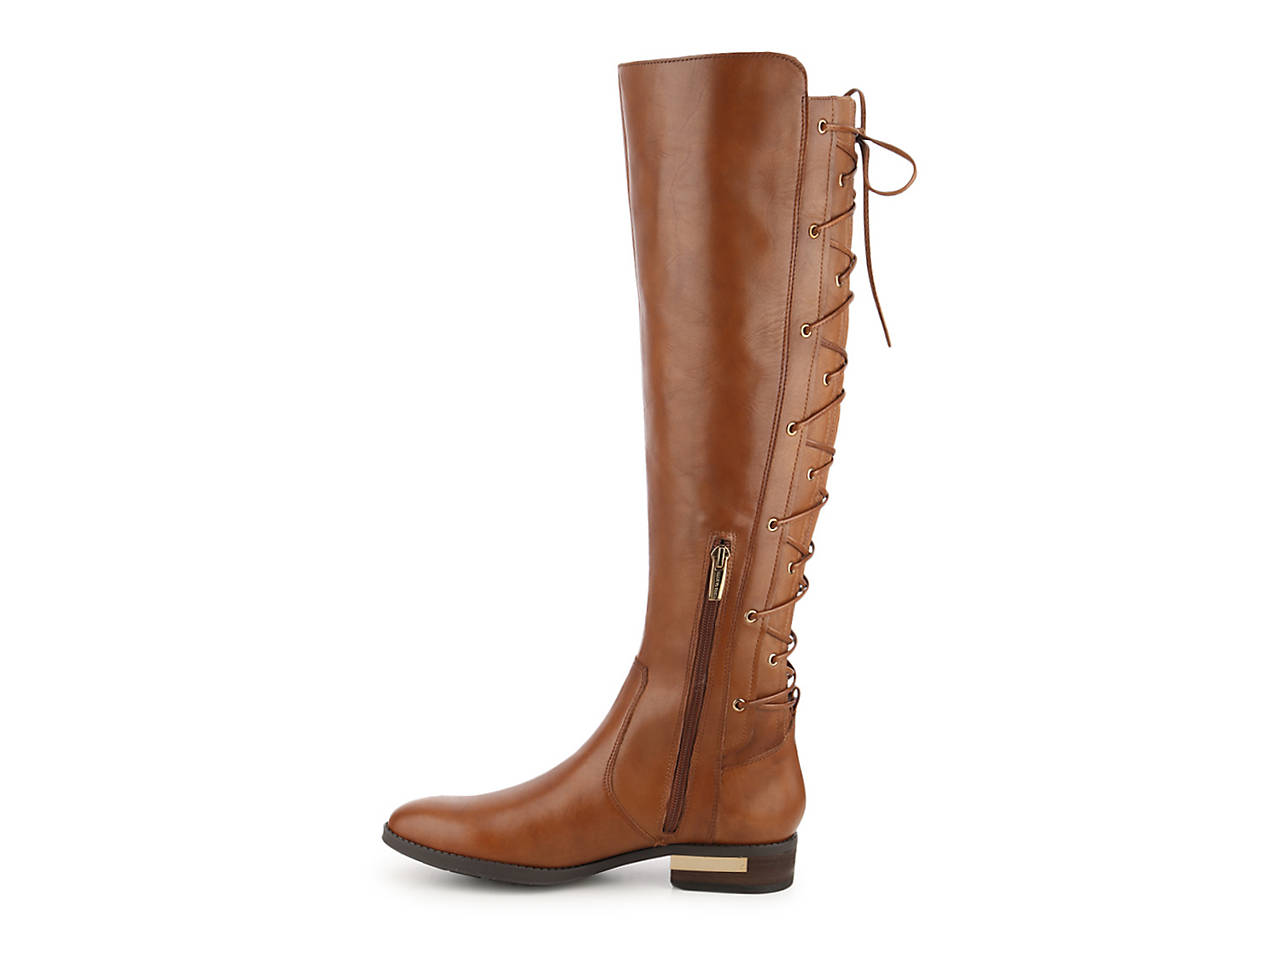 a3a273bba70 Vince Camuto Palenda Over The Knee Boot Women s Shoes